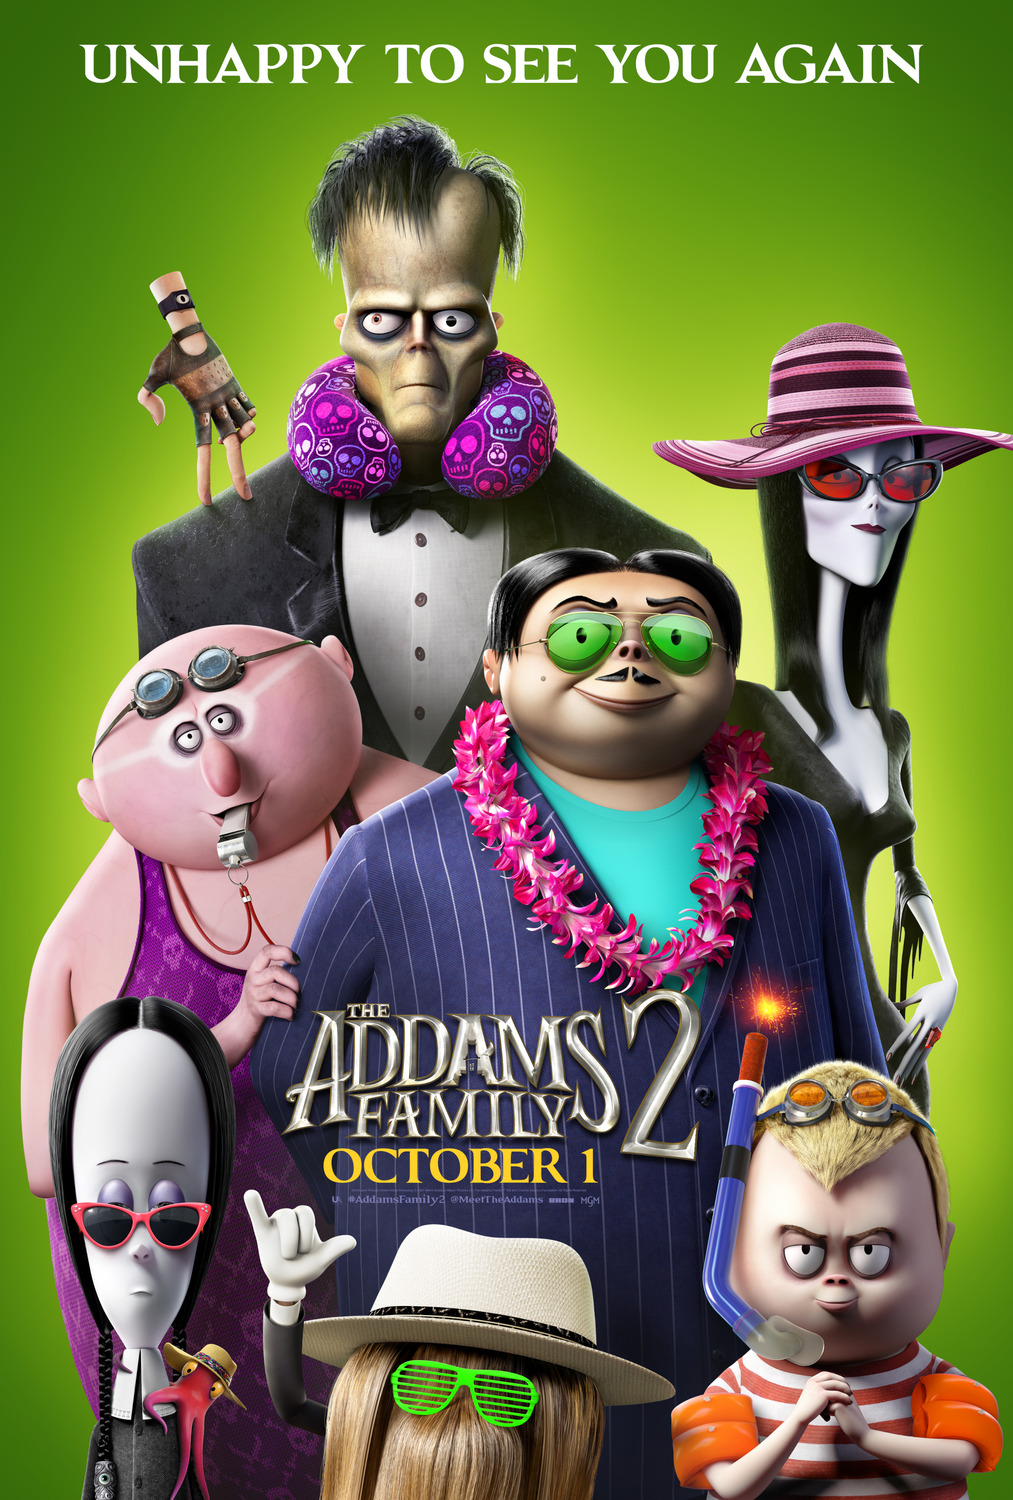 The Addams Family 2 (2021) Tamil Dubbed (Voice Over) & English [Dual Audio] WebRip 720p [1XBET]